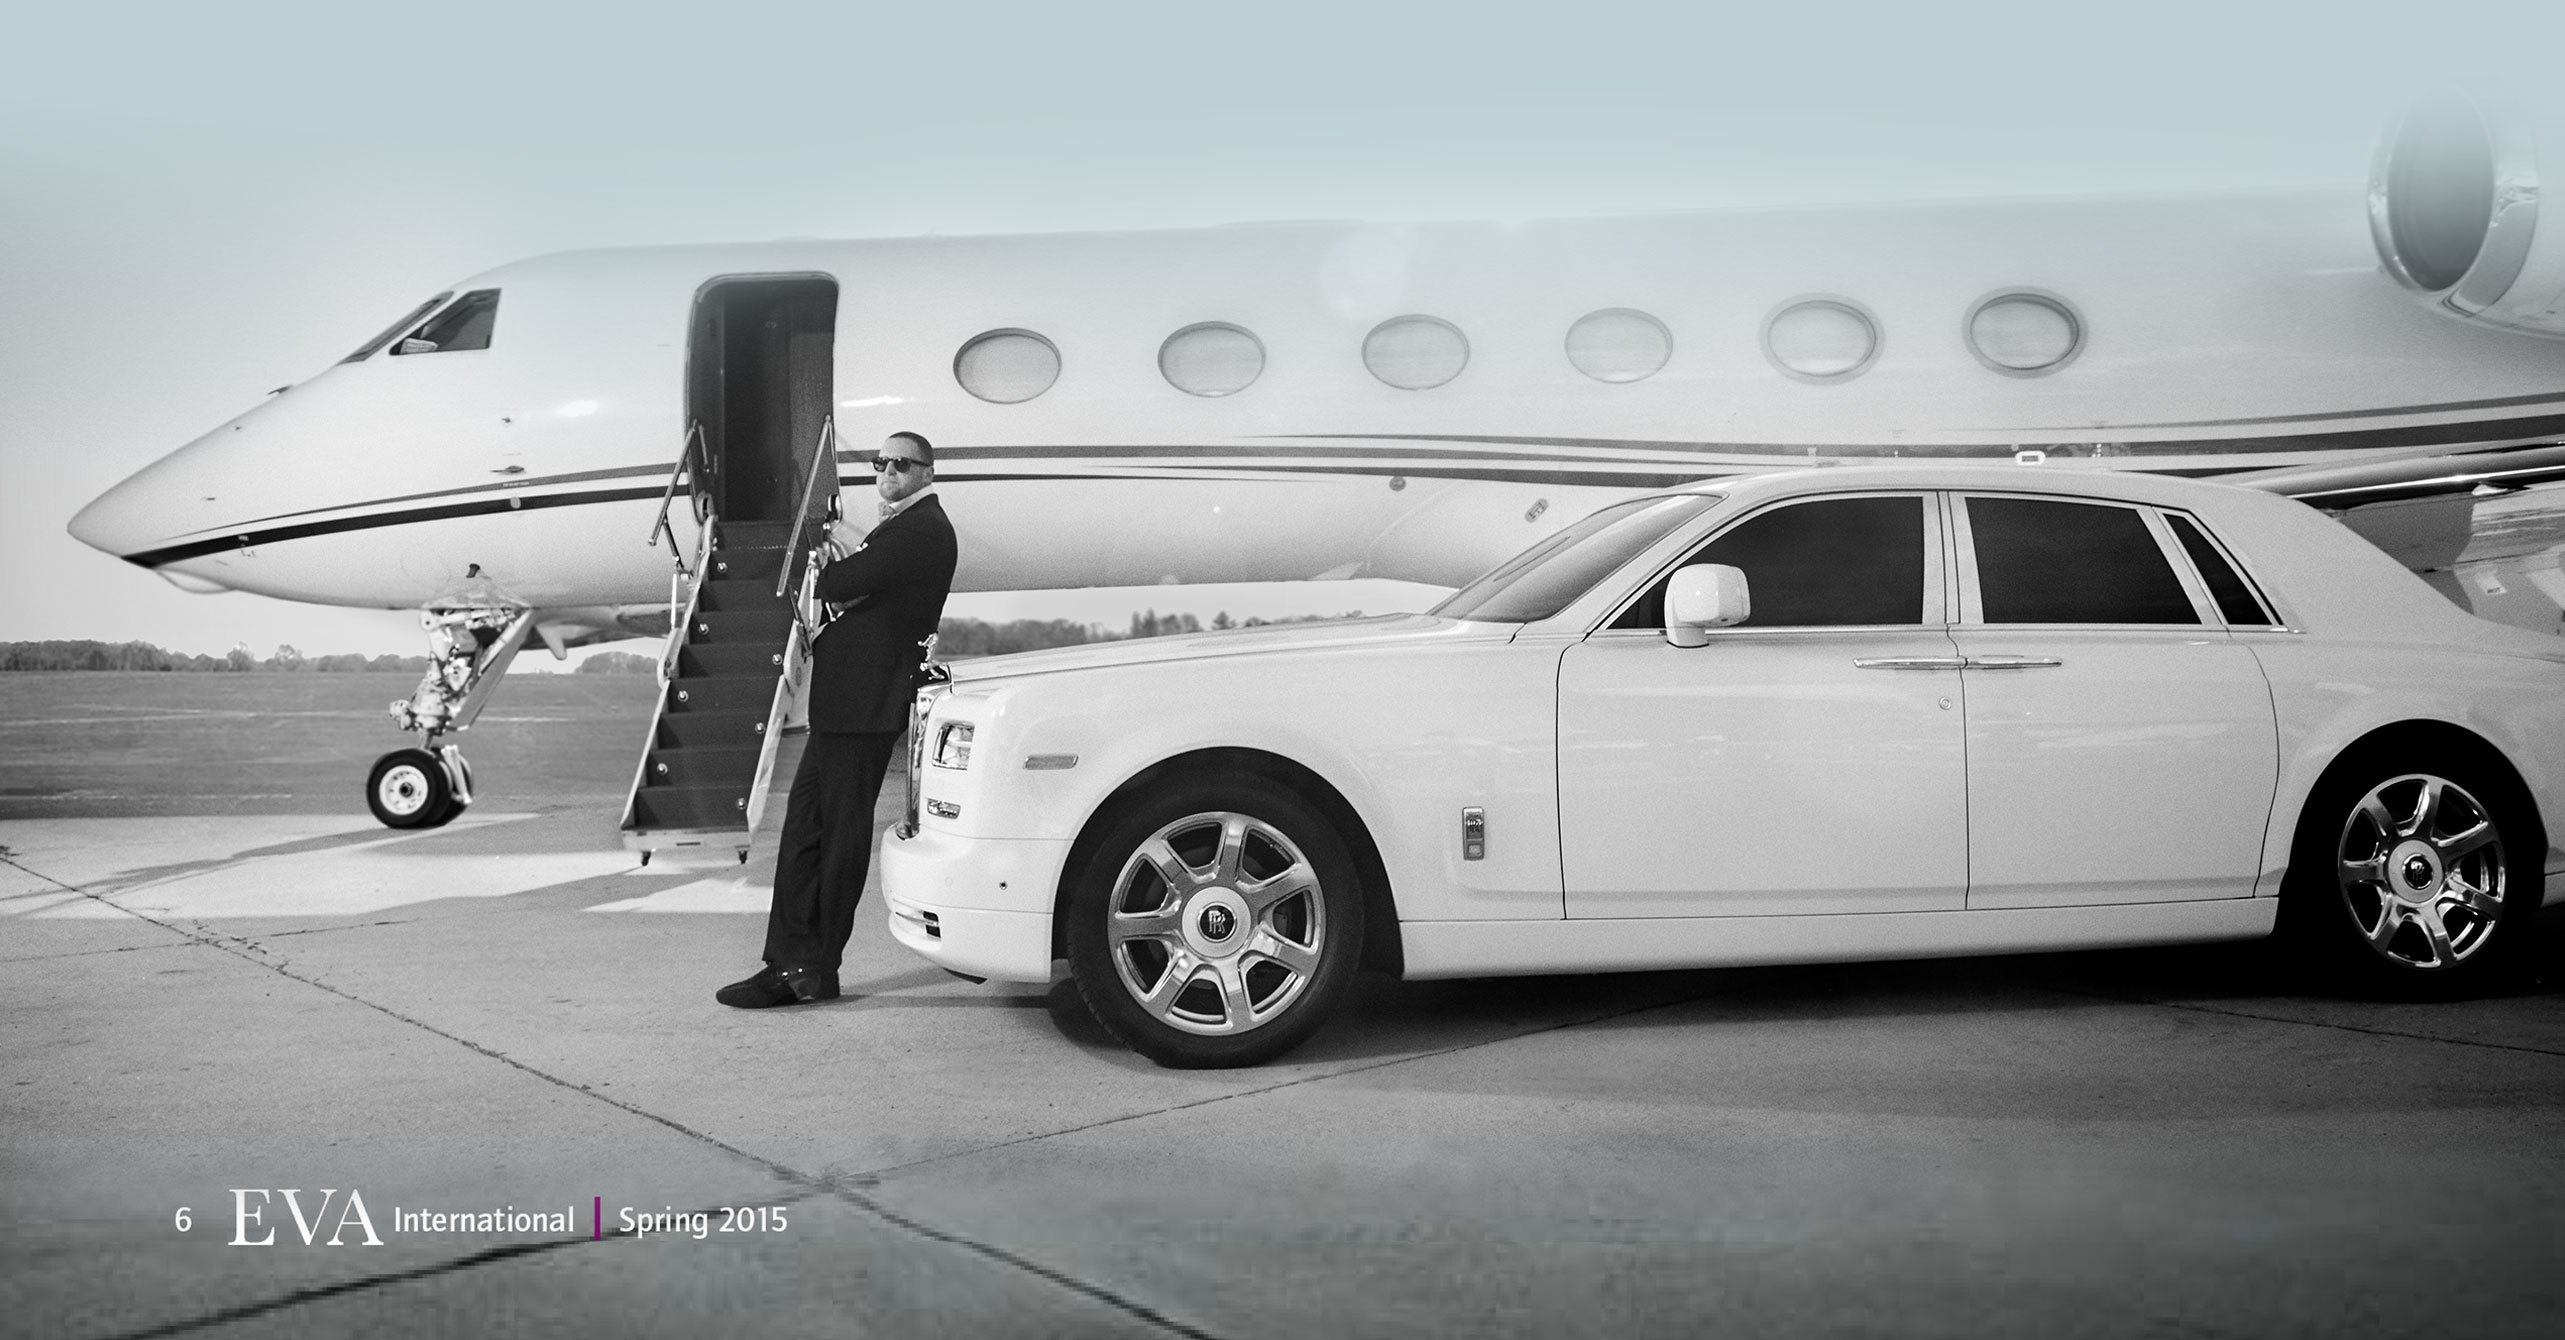 Christopher R. King with private jet and Rolls Royce Eva Magazine